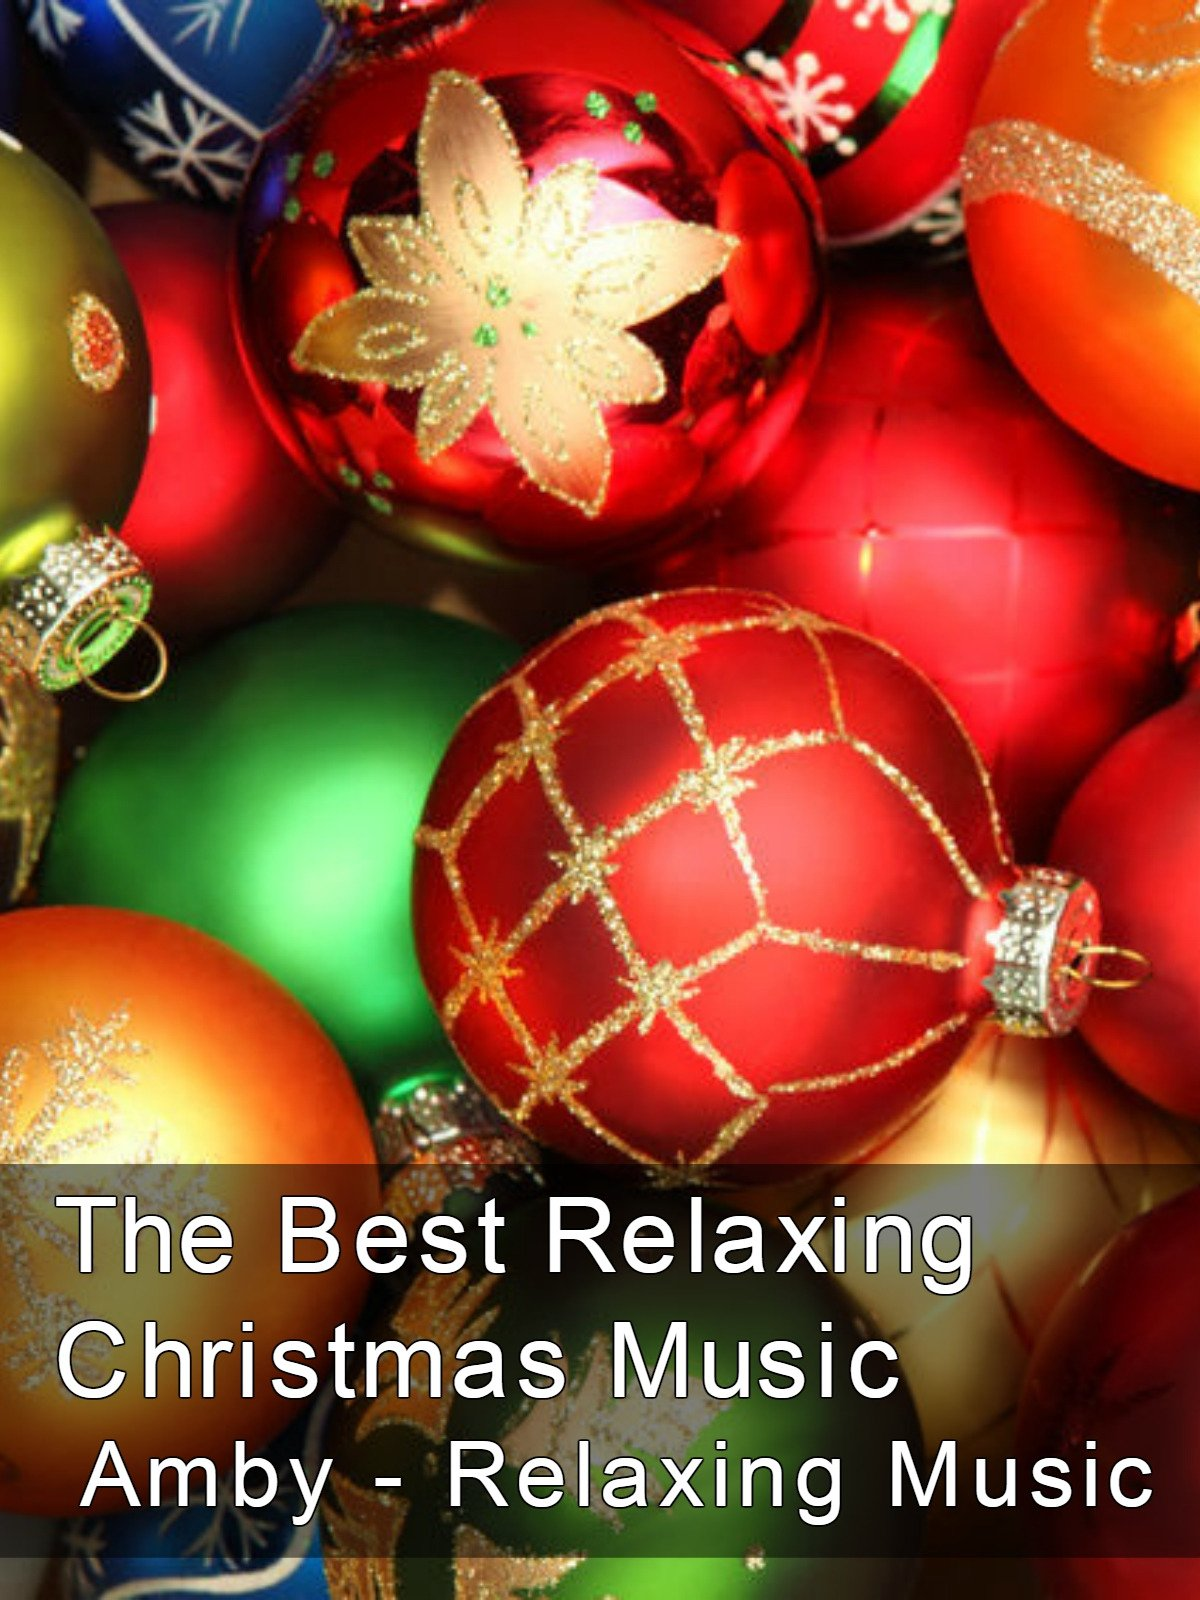 The Best Relaxing Christmas Music